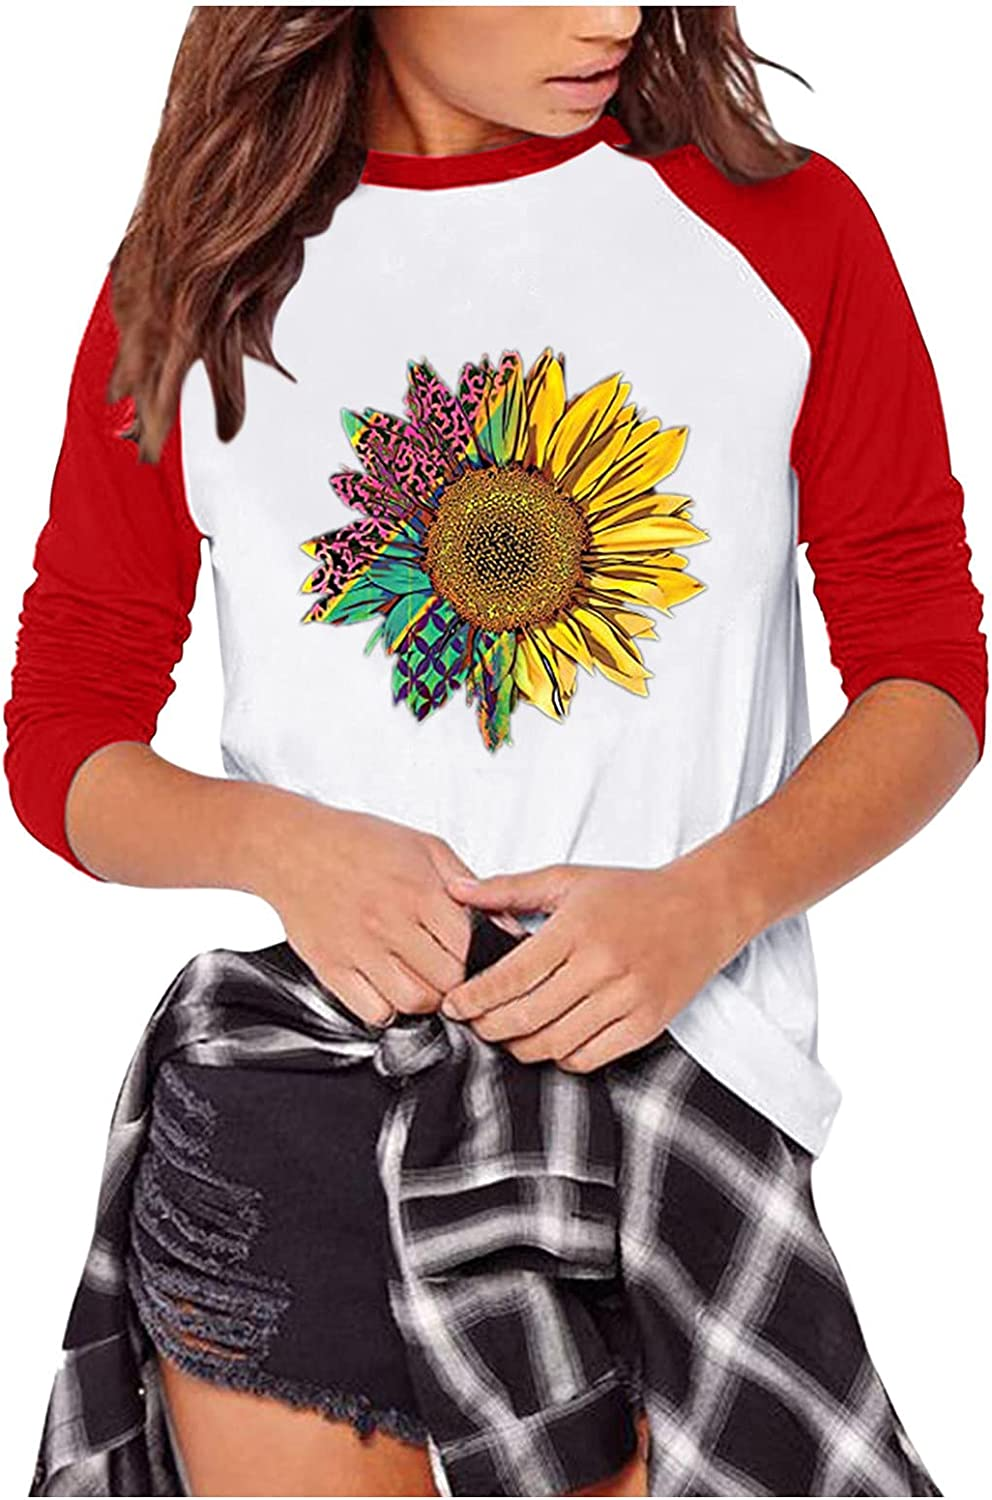 aihihe Long Sleeve Shirts for Women Graphic Color Block Pullover Tunic Tops Sweatshirts Fall Tee Shirts